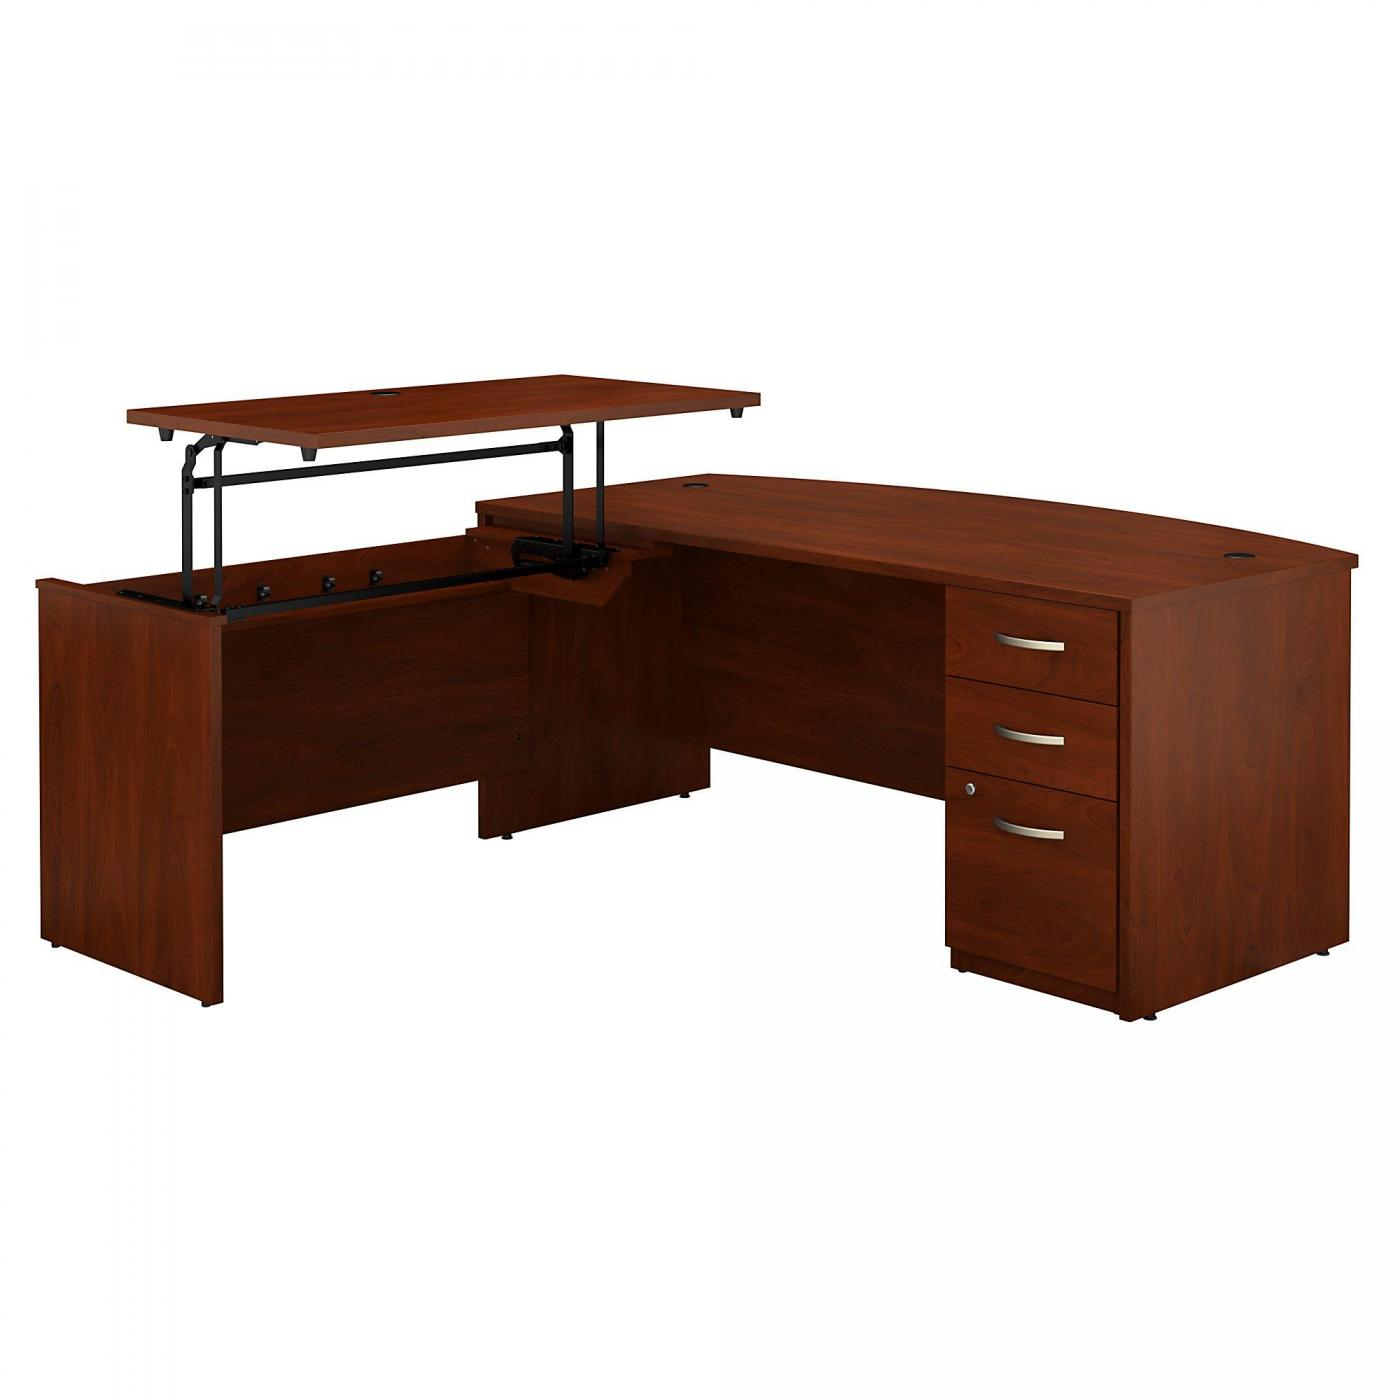 <font color=#c60><b>BUSH BUSINESS FURNITURE SERIES C ELITE 72W X 36D 3 POSITION SIT TO STAND BOW FRONT L SHAPED DESK WITH 3 DRAWER FILE CABINET. FREE SHIPPING. VIDEO:</font></b></font></b>